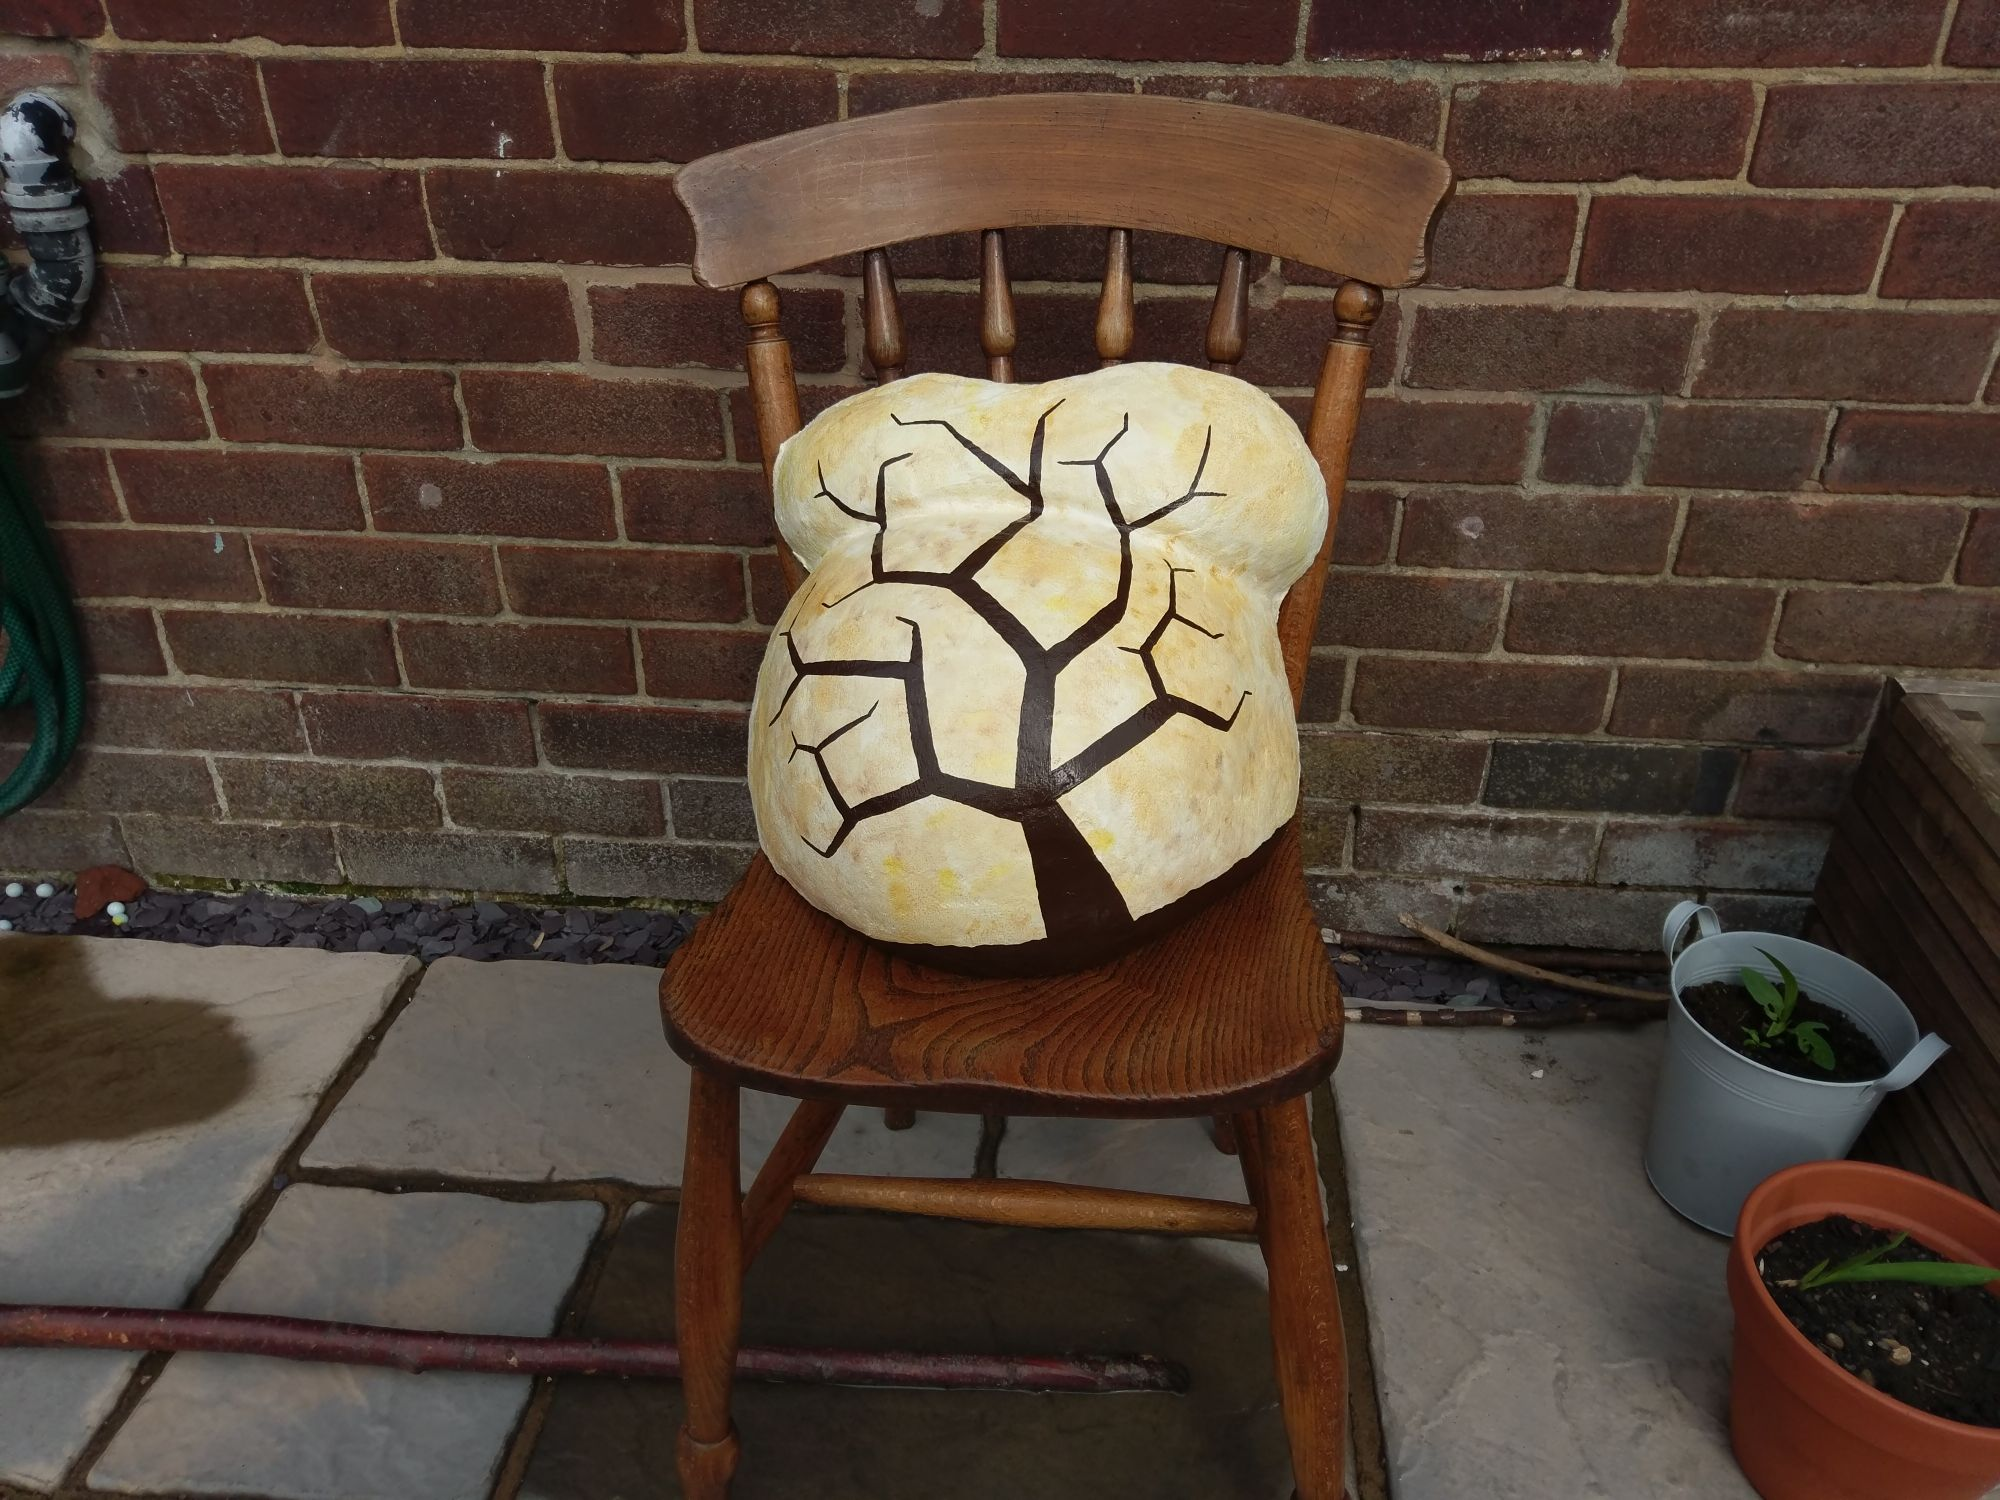 The cast on a chair with a tree trunk and branches painted on it.